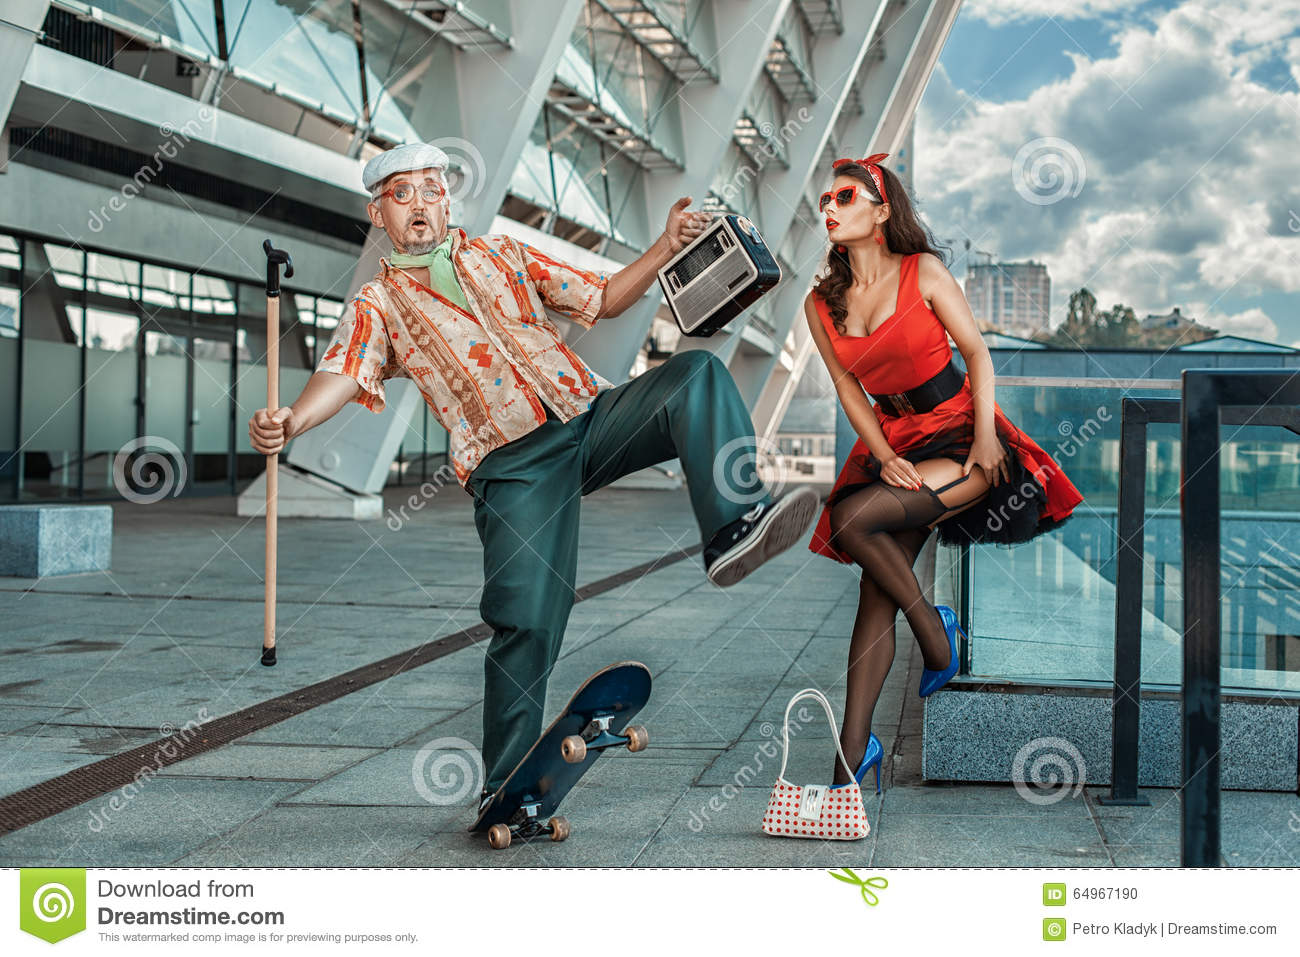 Old Grandfather Rides Skateboard Past The Girl. Stock Photo ...